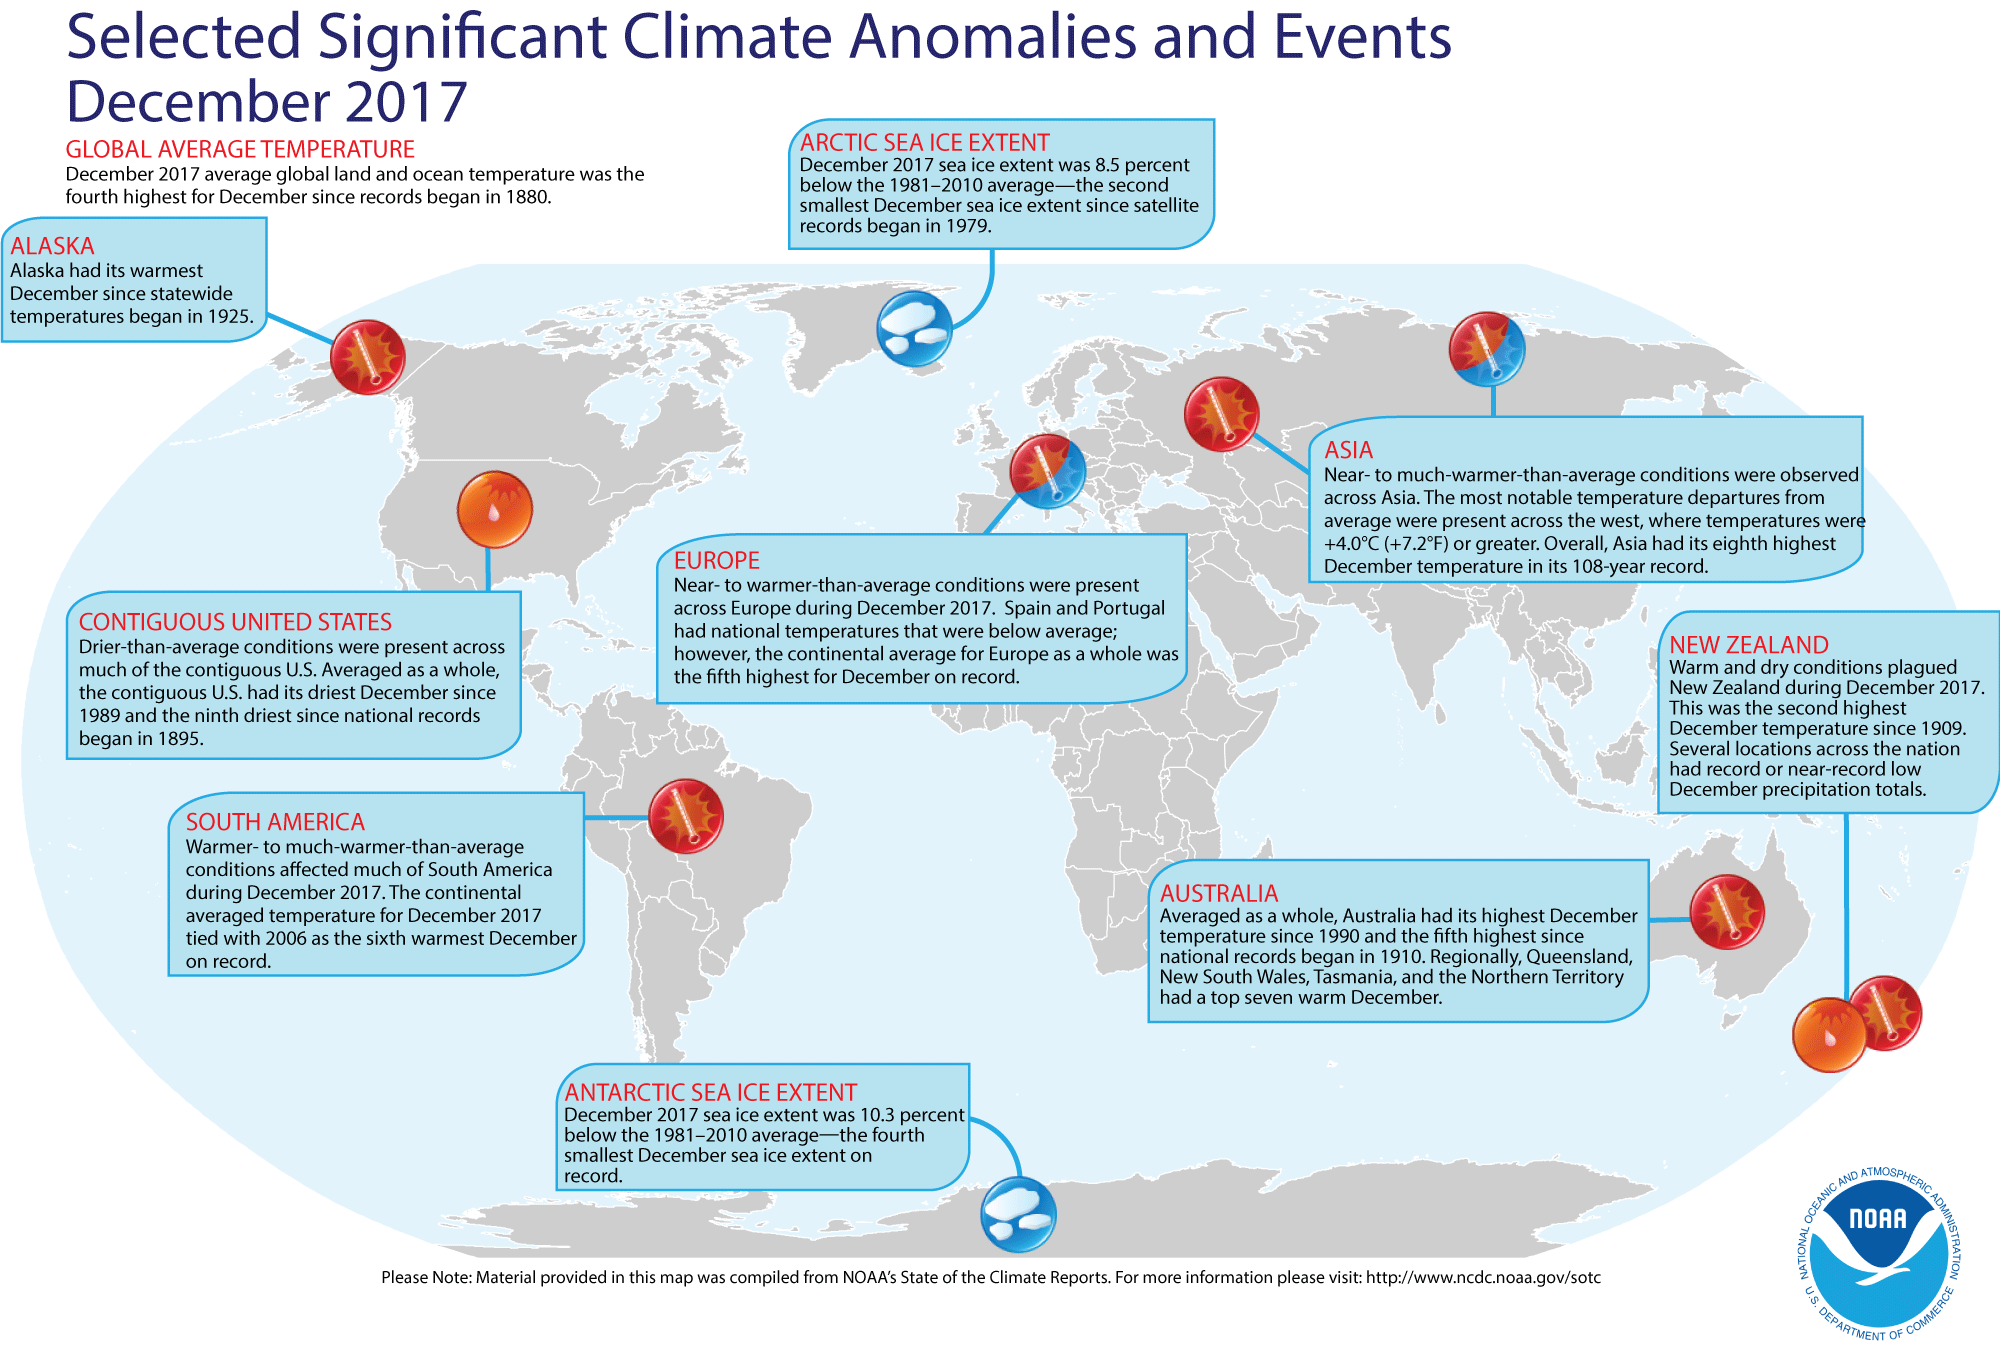 Map of global selected significant climate anomalies and events for December 2017